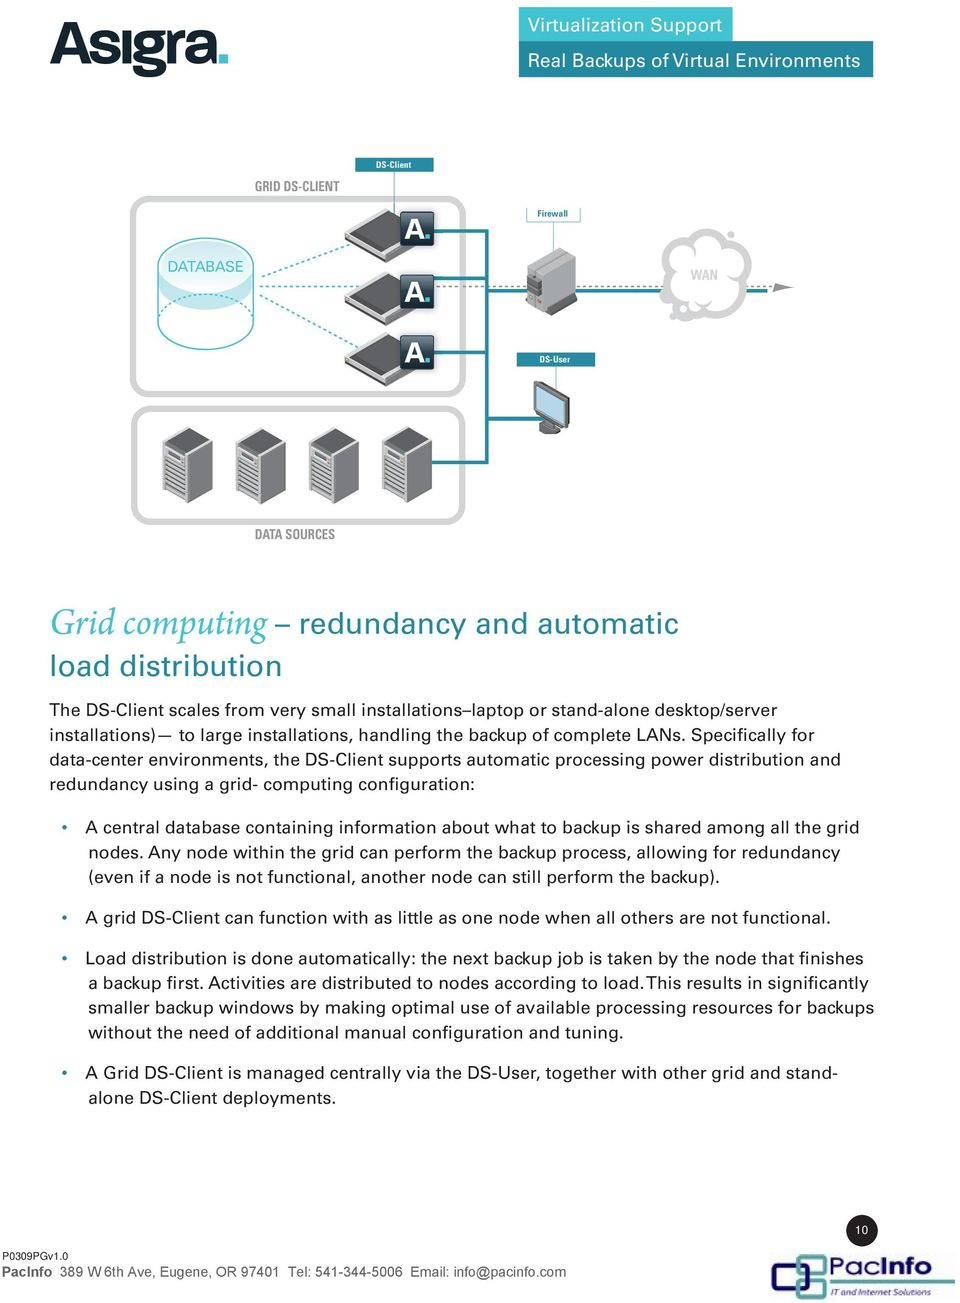 Specifically for data-center environments, the supports automatic processing power distribution and redundancy using a grid- computing configuration: A central database containing information about